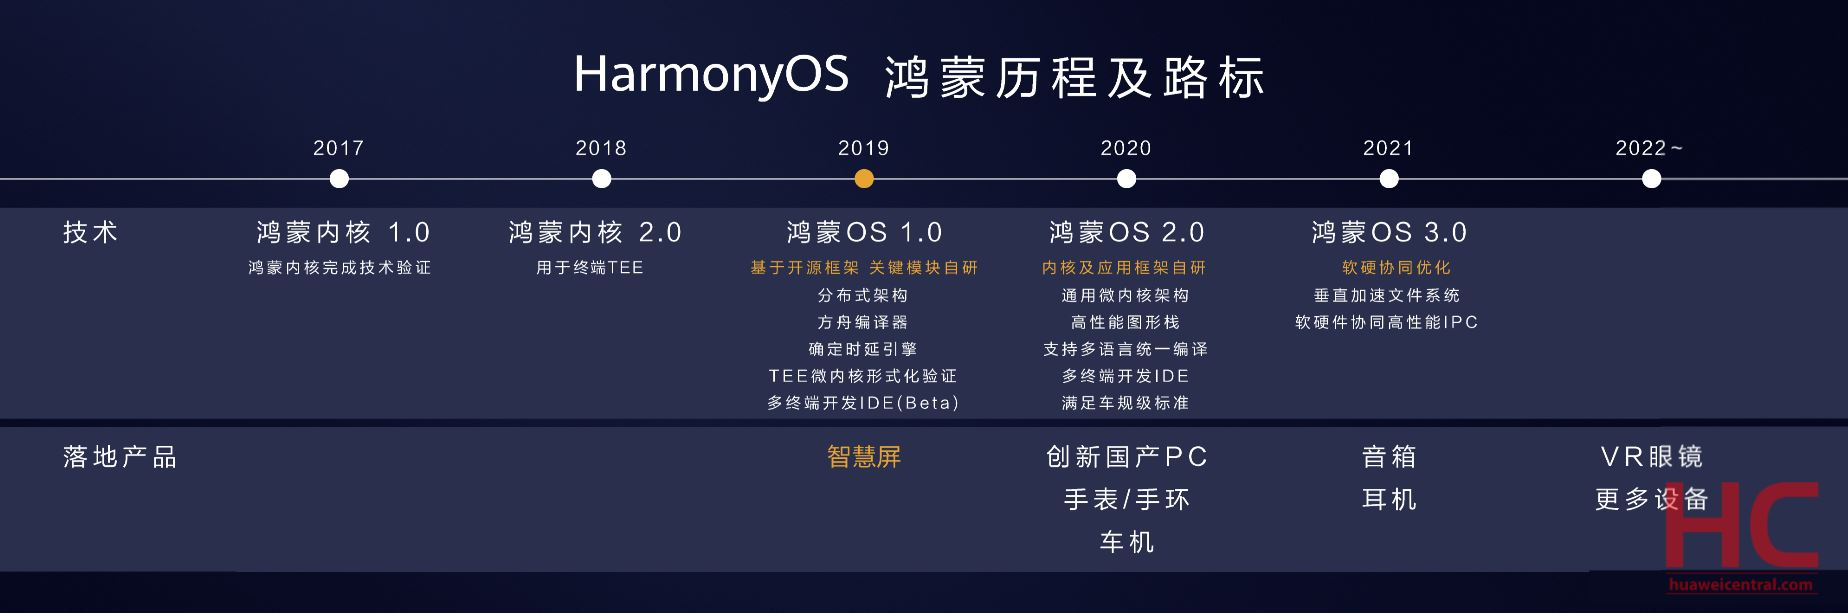 HarmonyOS Roadmap